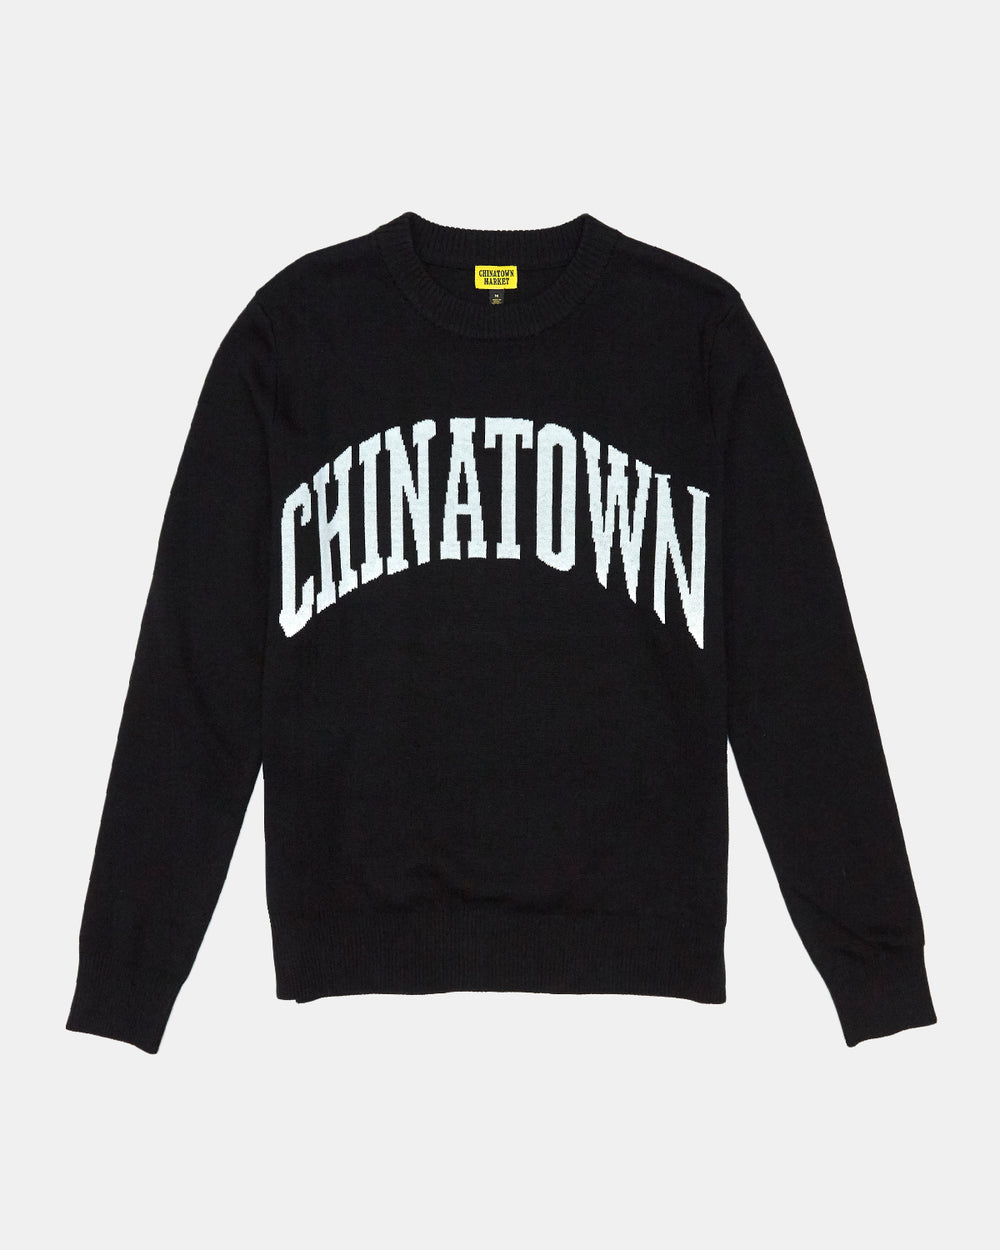 Chinatown Market - Arc Knit Sweater (Black)